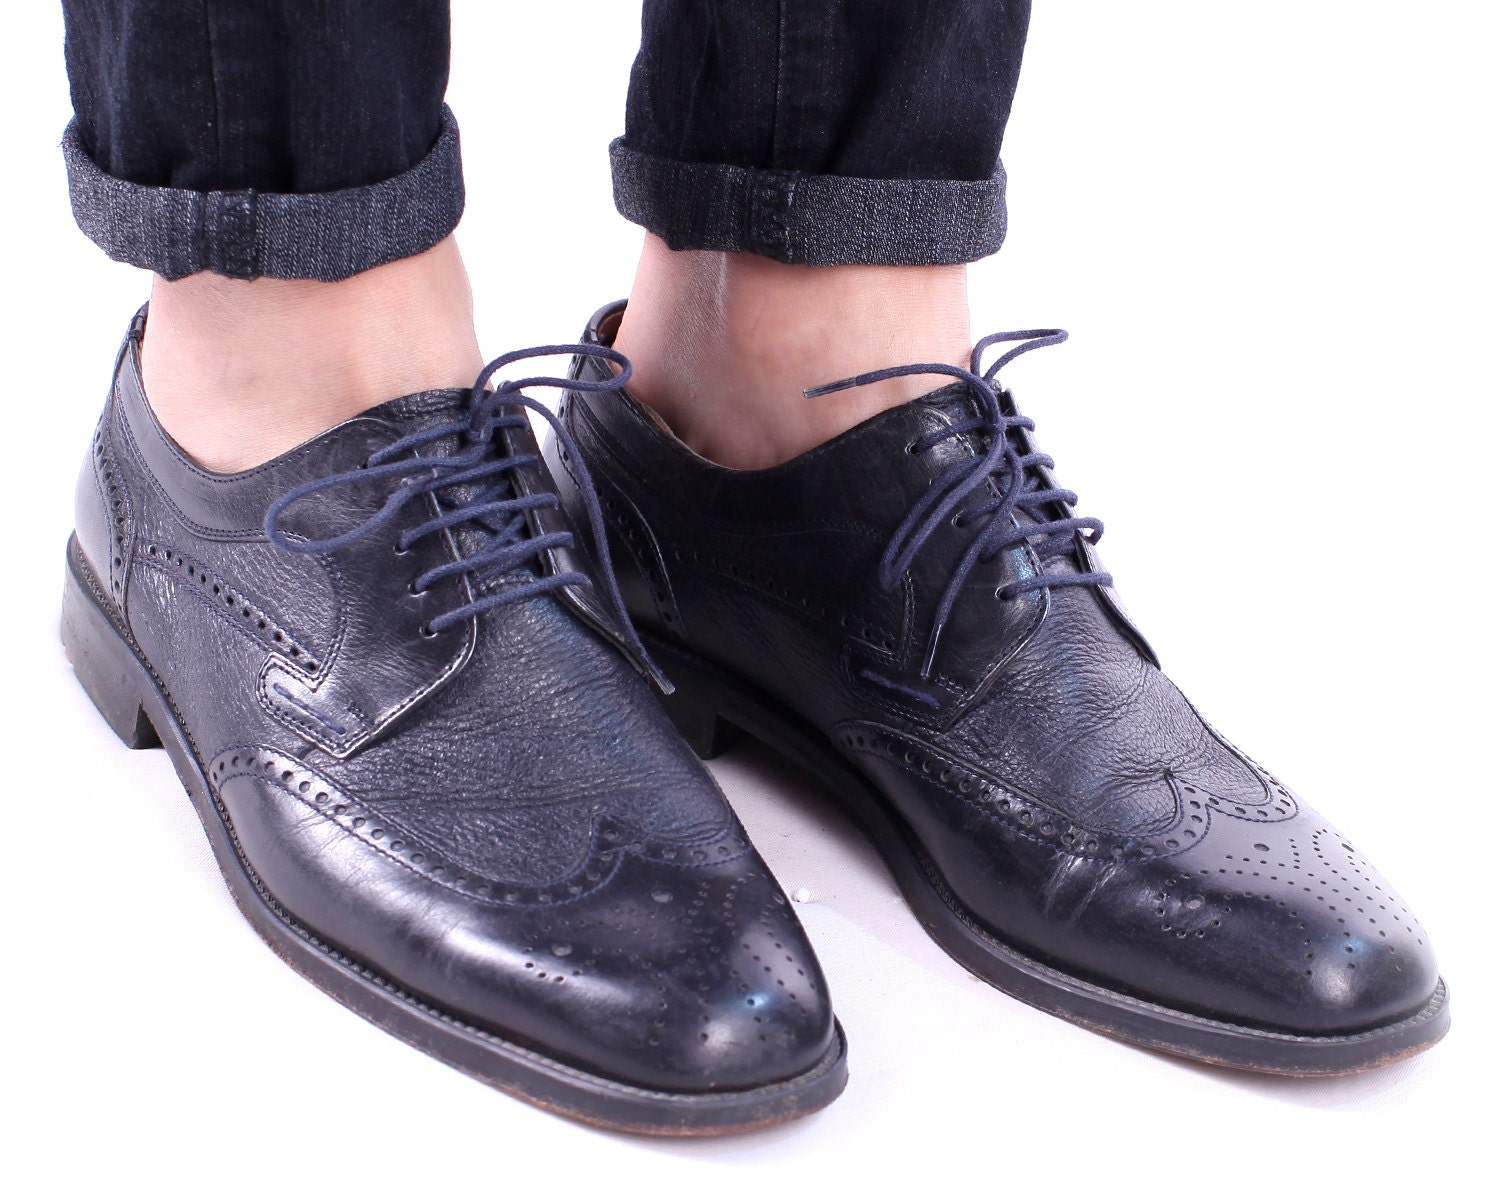 vintage brogues for black dress shoes 1990s by lloyd